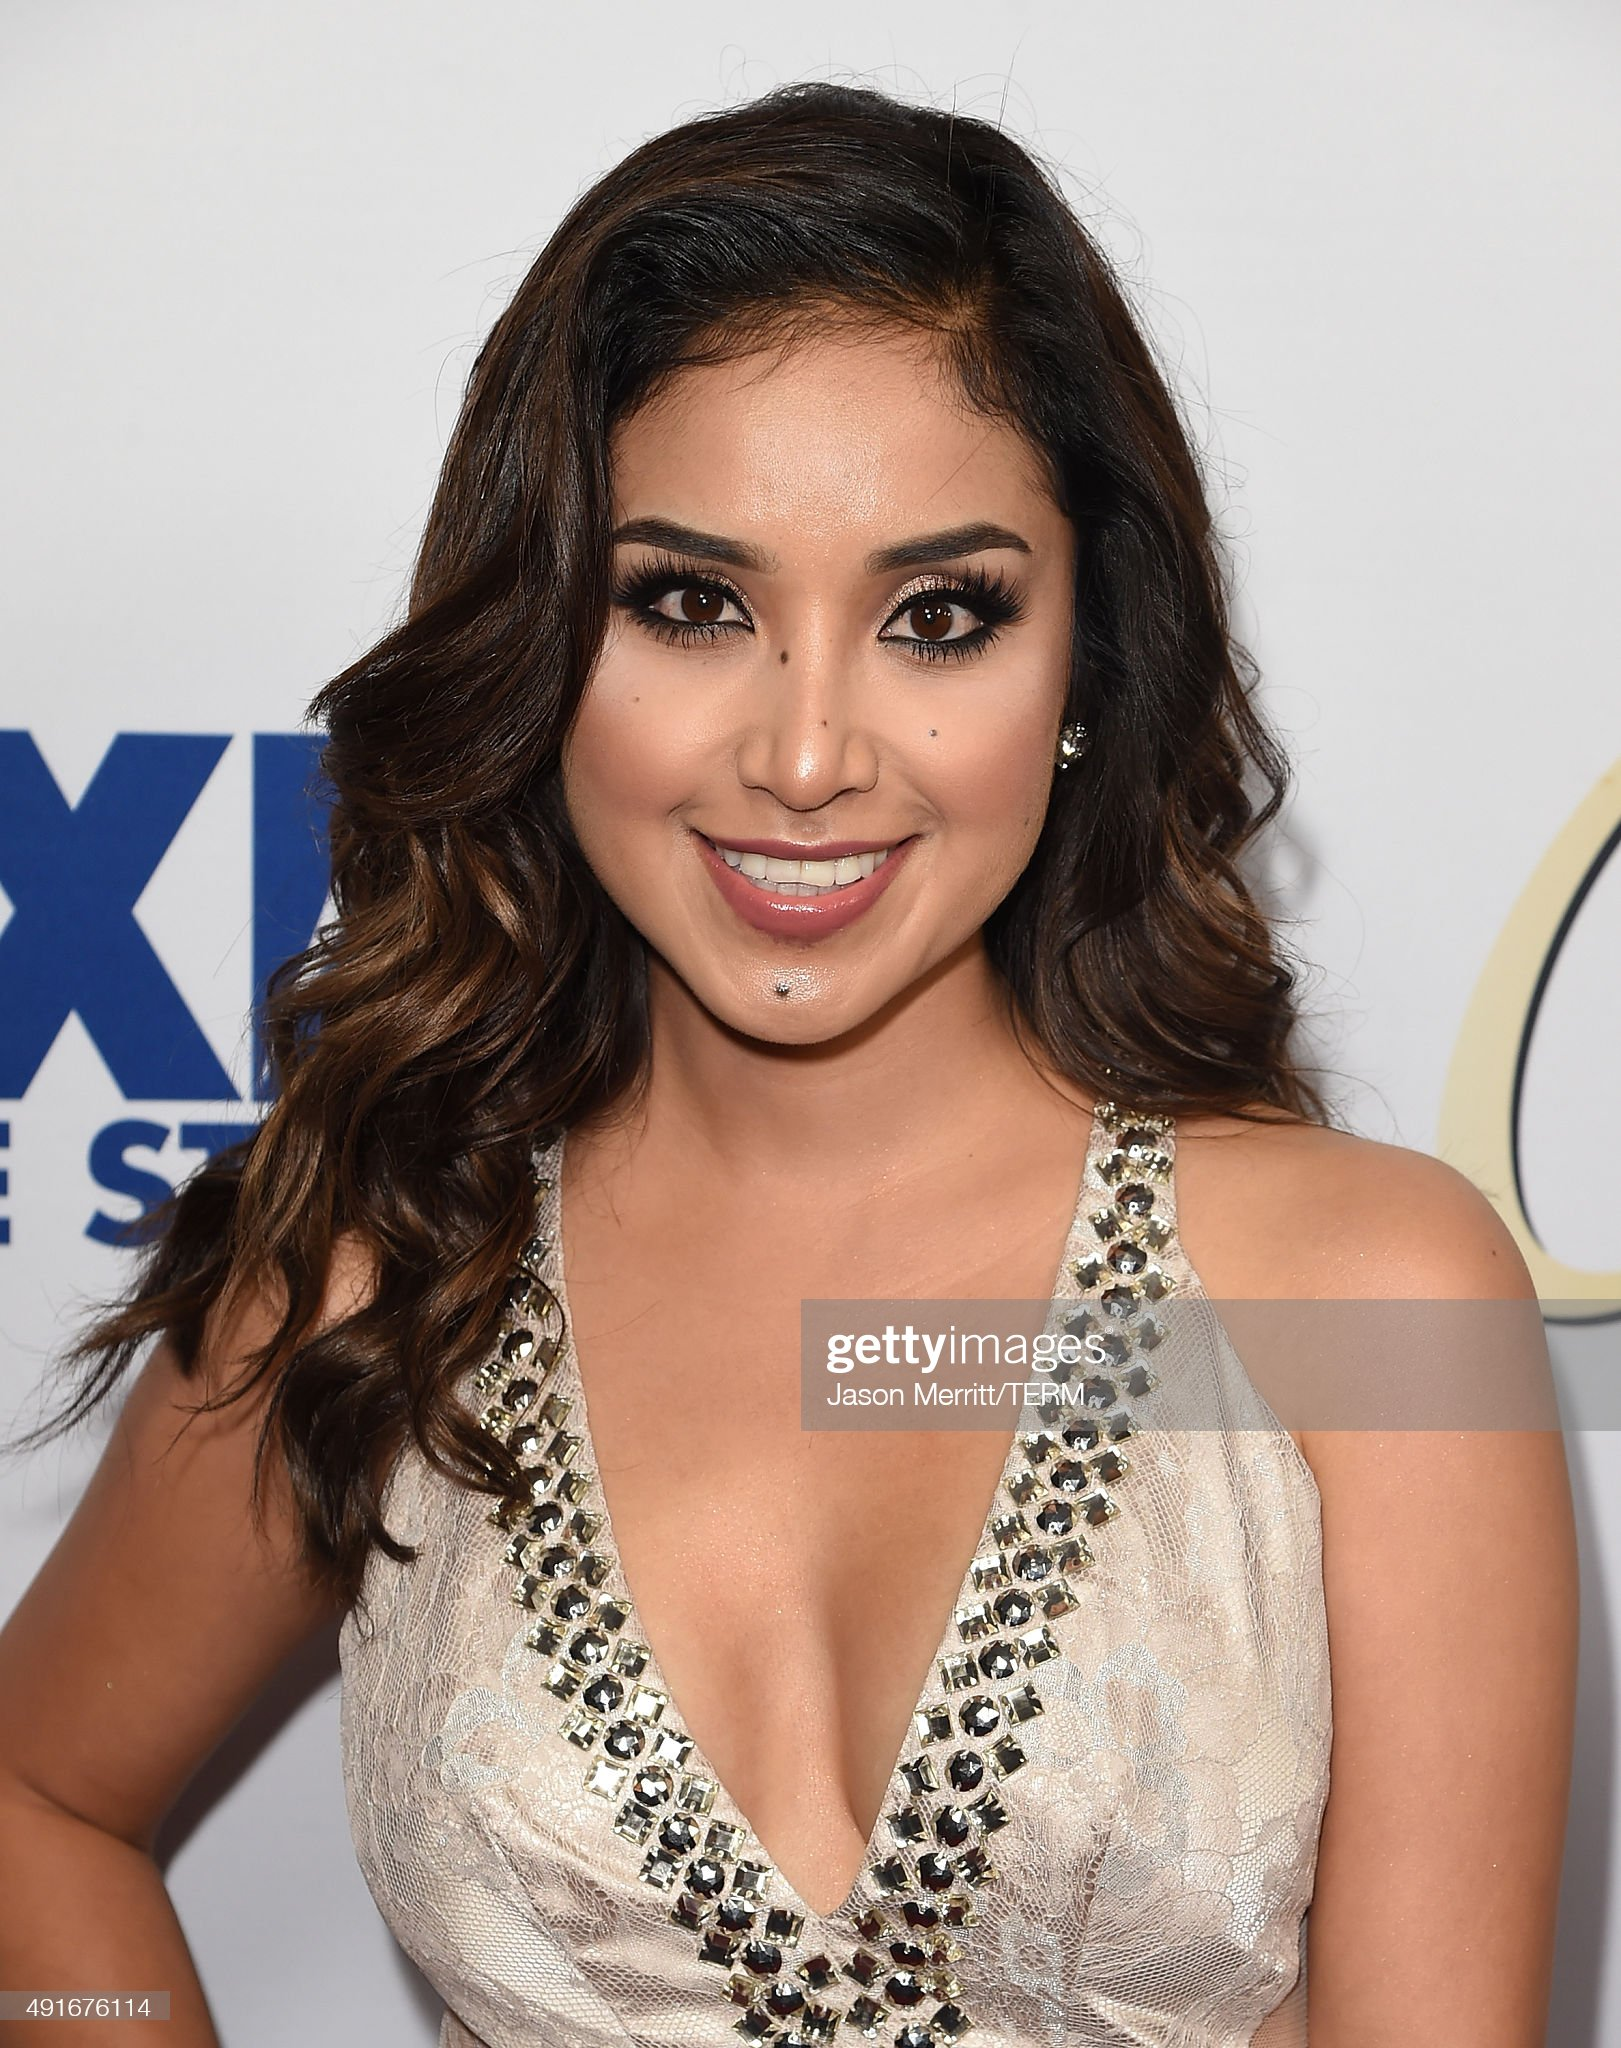 Las mezclas amerindias y europeas - Mestizas y mestizos - Página 12 Dulce-candy-attends-the-latina-hot-list-party-hosted-by-latina-media-picture-id491676114?s=2048x2048